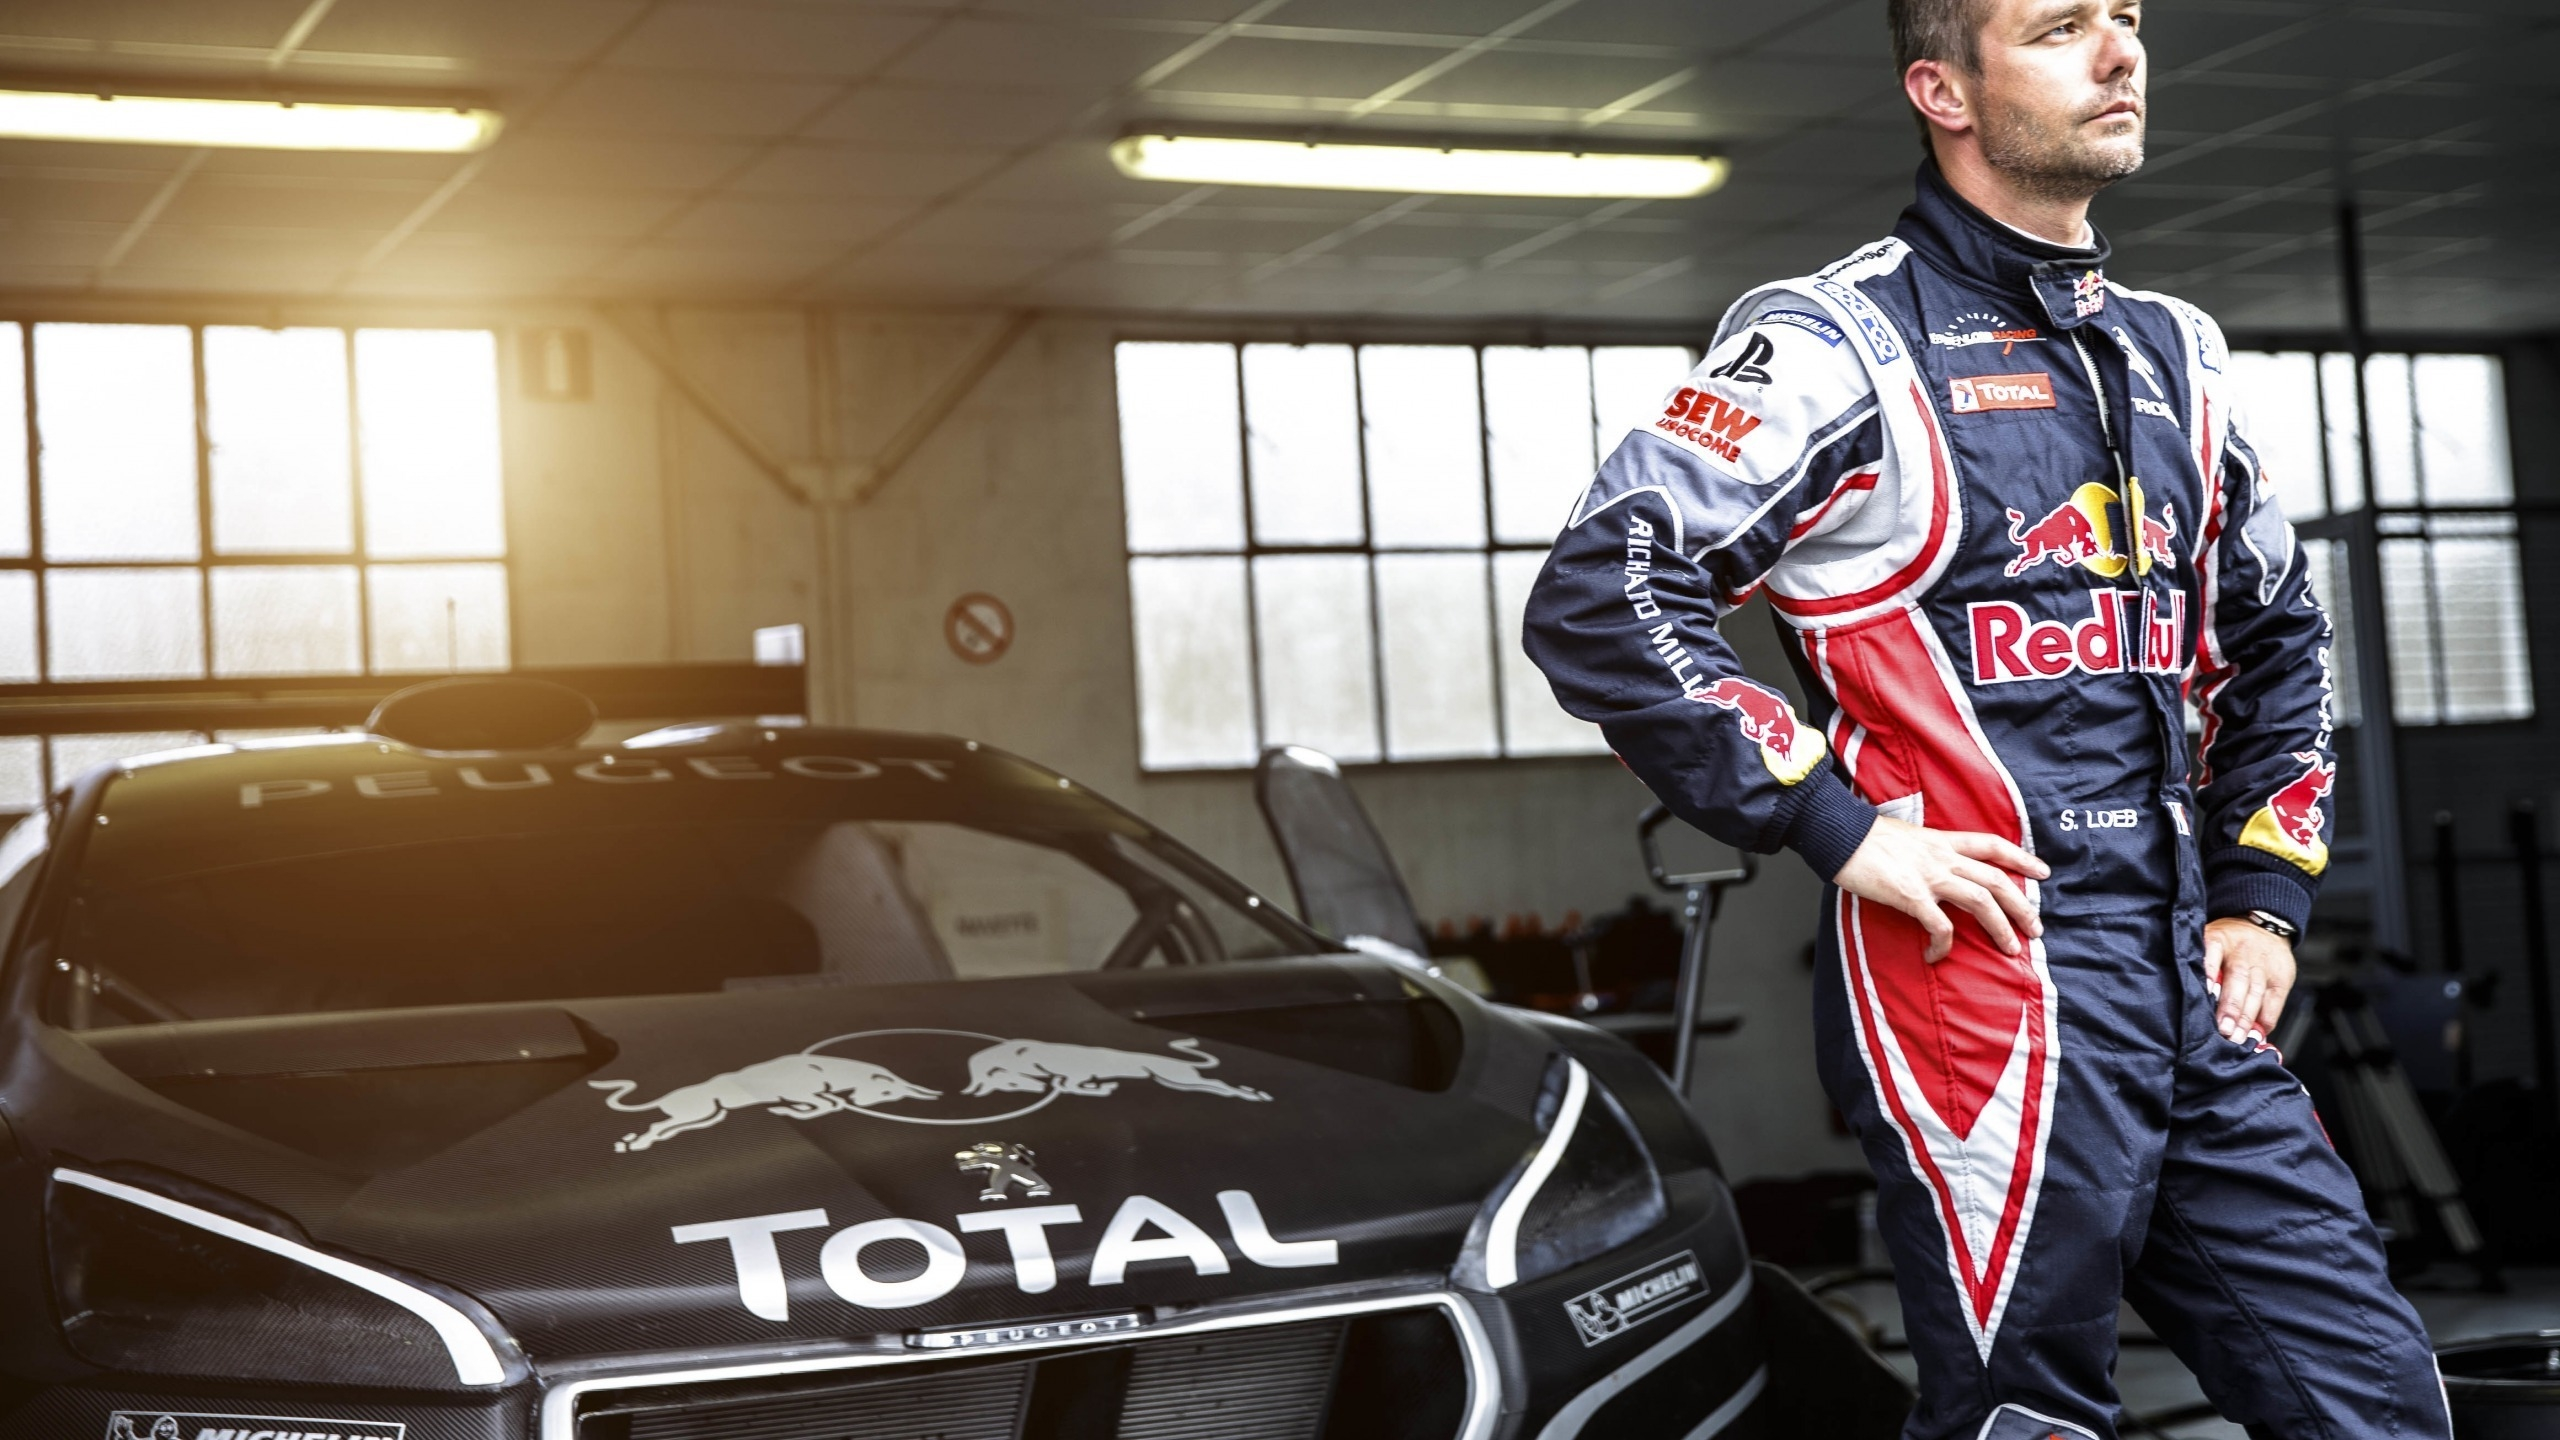 sebastien loeb 2560x1440 wallpaper